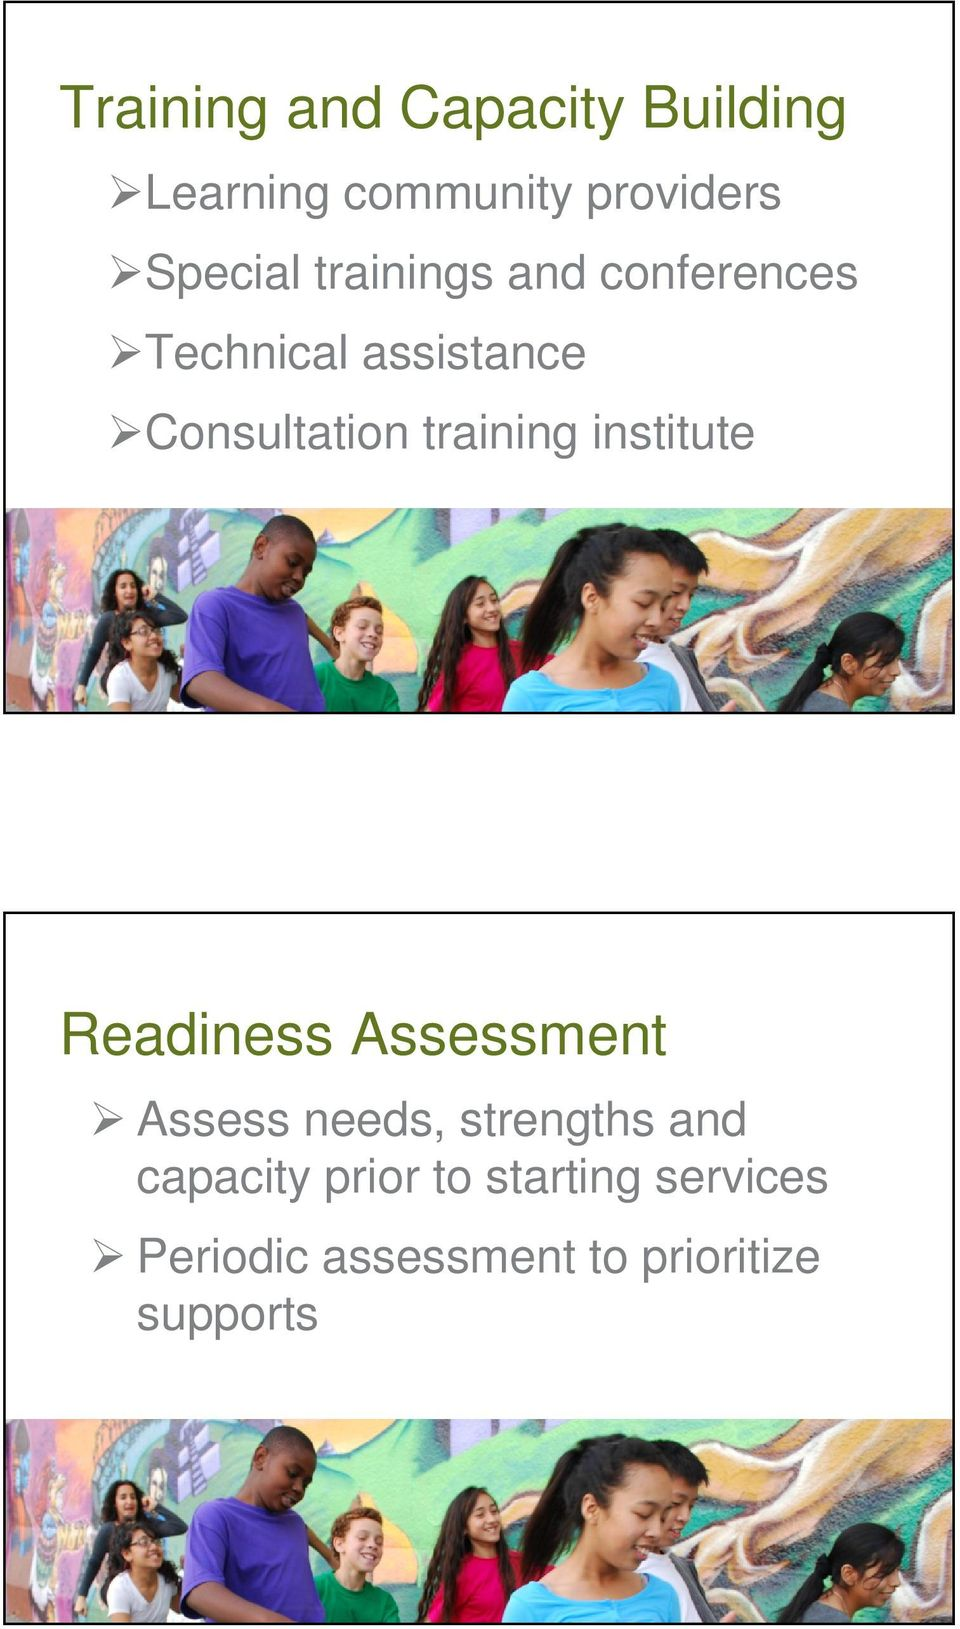 institute Readiness Assessment Assess needs, strengths and capacity